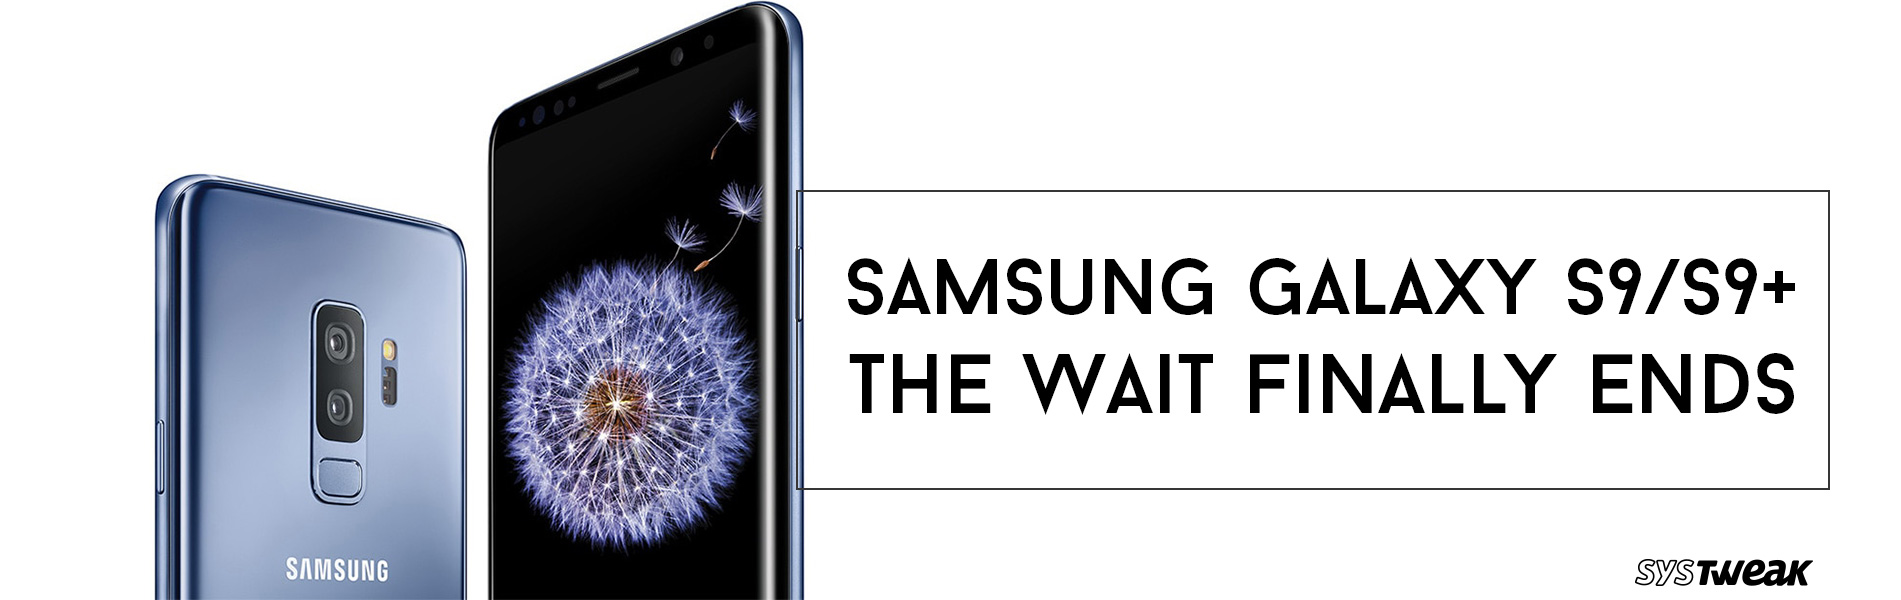 Samsung Galaxy S9: Everything You Should Know About It